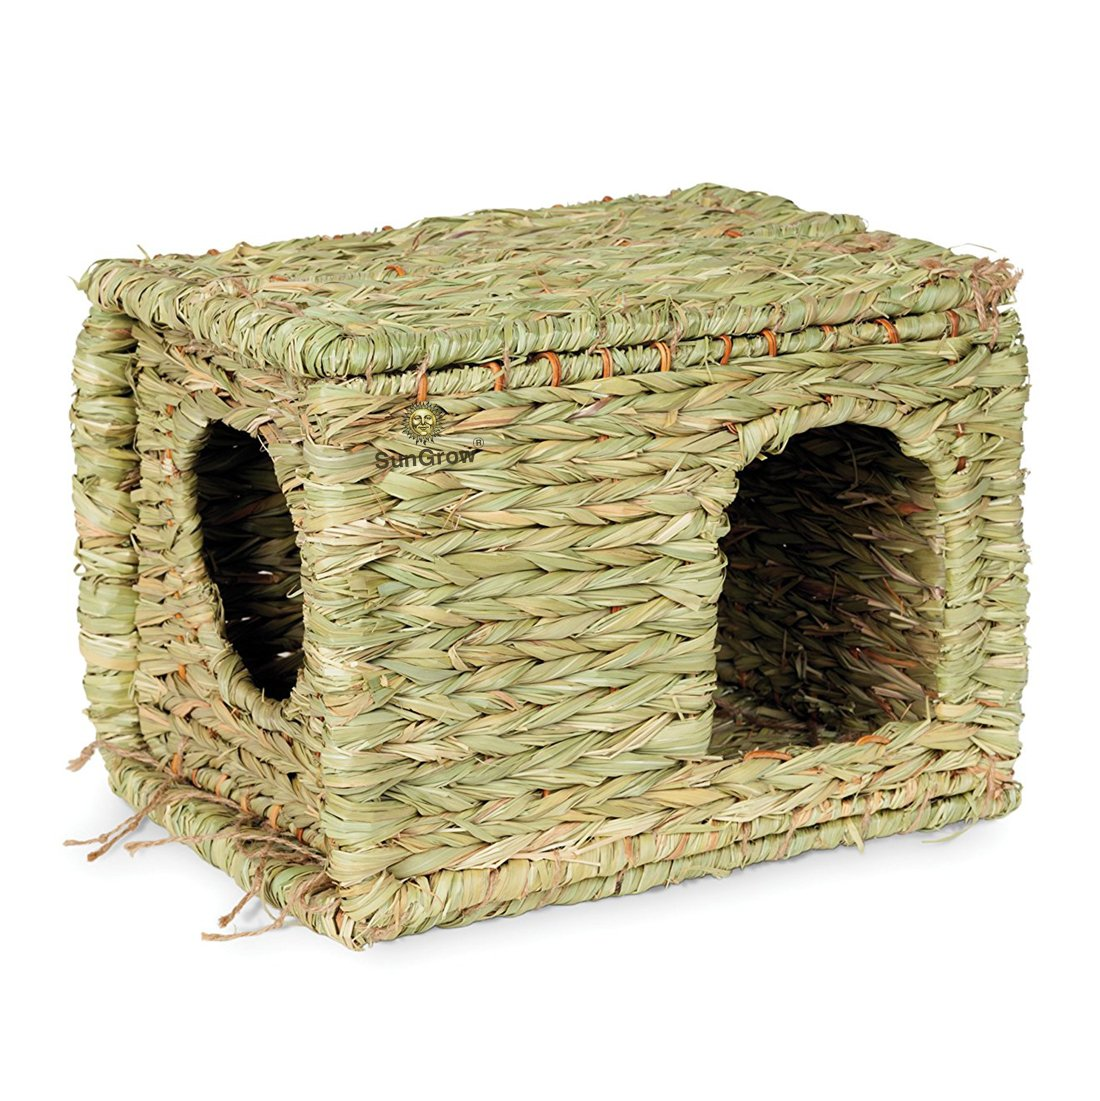 SunGrow Folding Woven Grass House for Rabbits, Guinea Pigs, Bunnies : Provides Comfort, Warmth & Security by Satisfying Natural Instincts: Multi-Utility, Edible, Non-Toxic, Chew Toy for Small Animals by SunGrow (Image #5)